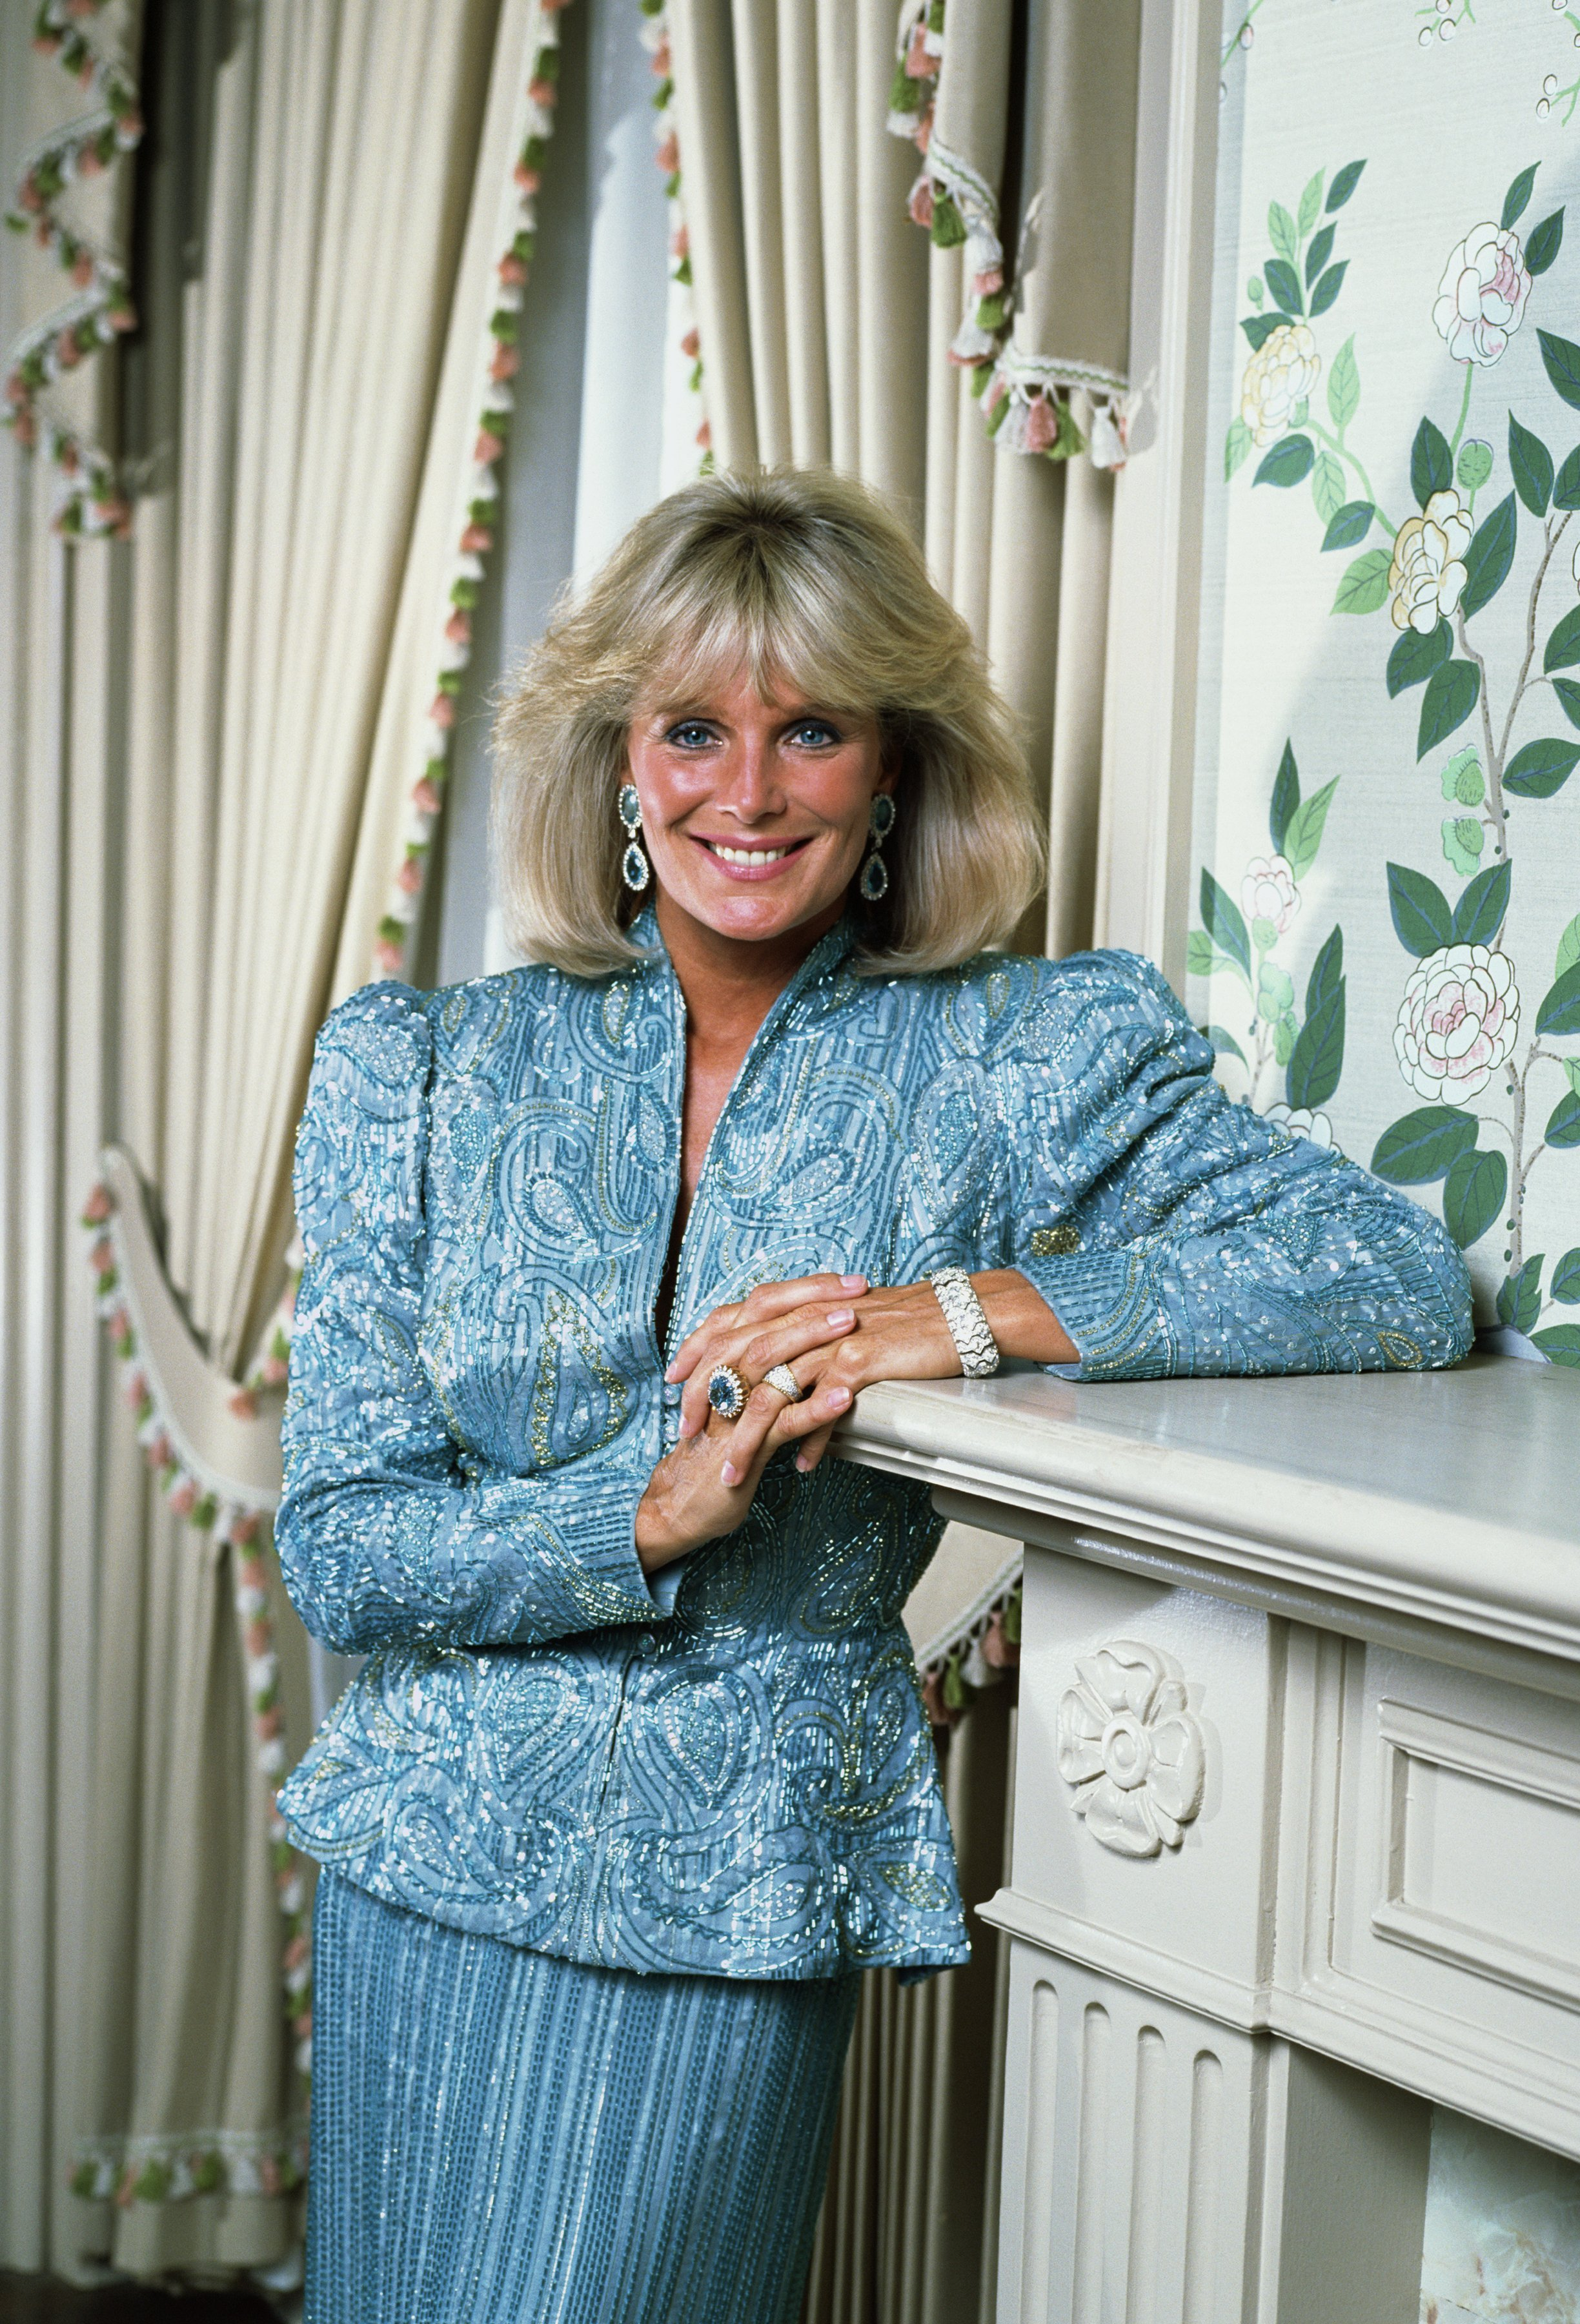 Linda Evans poses during a photo session in Hollywood, California in 1987 | Photo: Getty Images